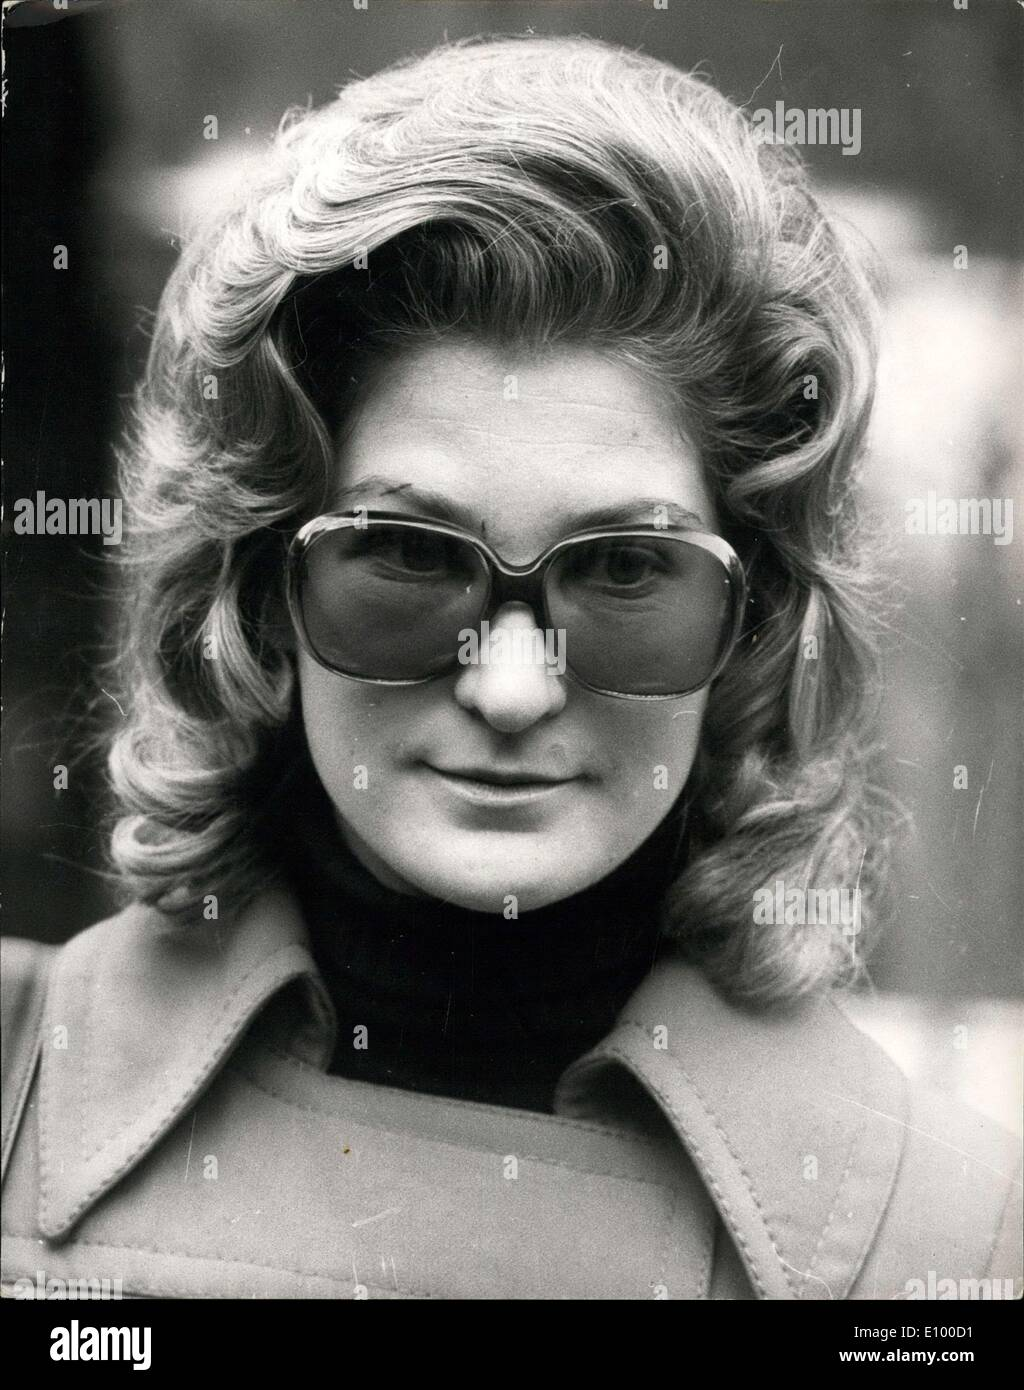 Jan. 14, 1972 - Lady Mackeson Divorce Petition: Sir Rupert Mackeson, 30, ex-Harrovian, Guards Officer and steeplechase rider, promised a High Court Judge yesterday that he would not molest his estranged wife, Lady Mackeson, 24, daughter of Merchant banker, Sir Kenneth Keith. The judge also ordered that Lady Mackeson's divorce petition should be brought forward by two months and heard today. Photo shows Today's picture of Lady Mackeson. - Stock Image